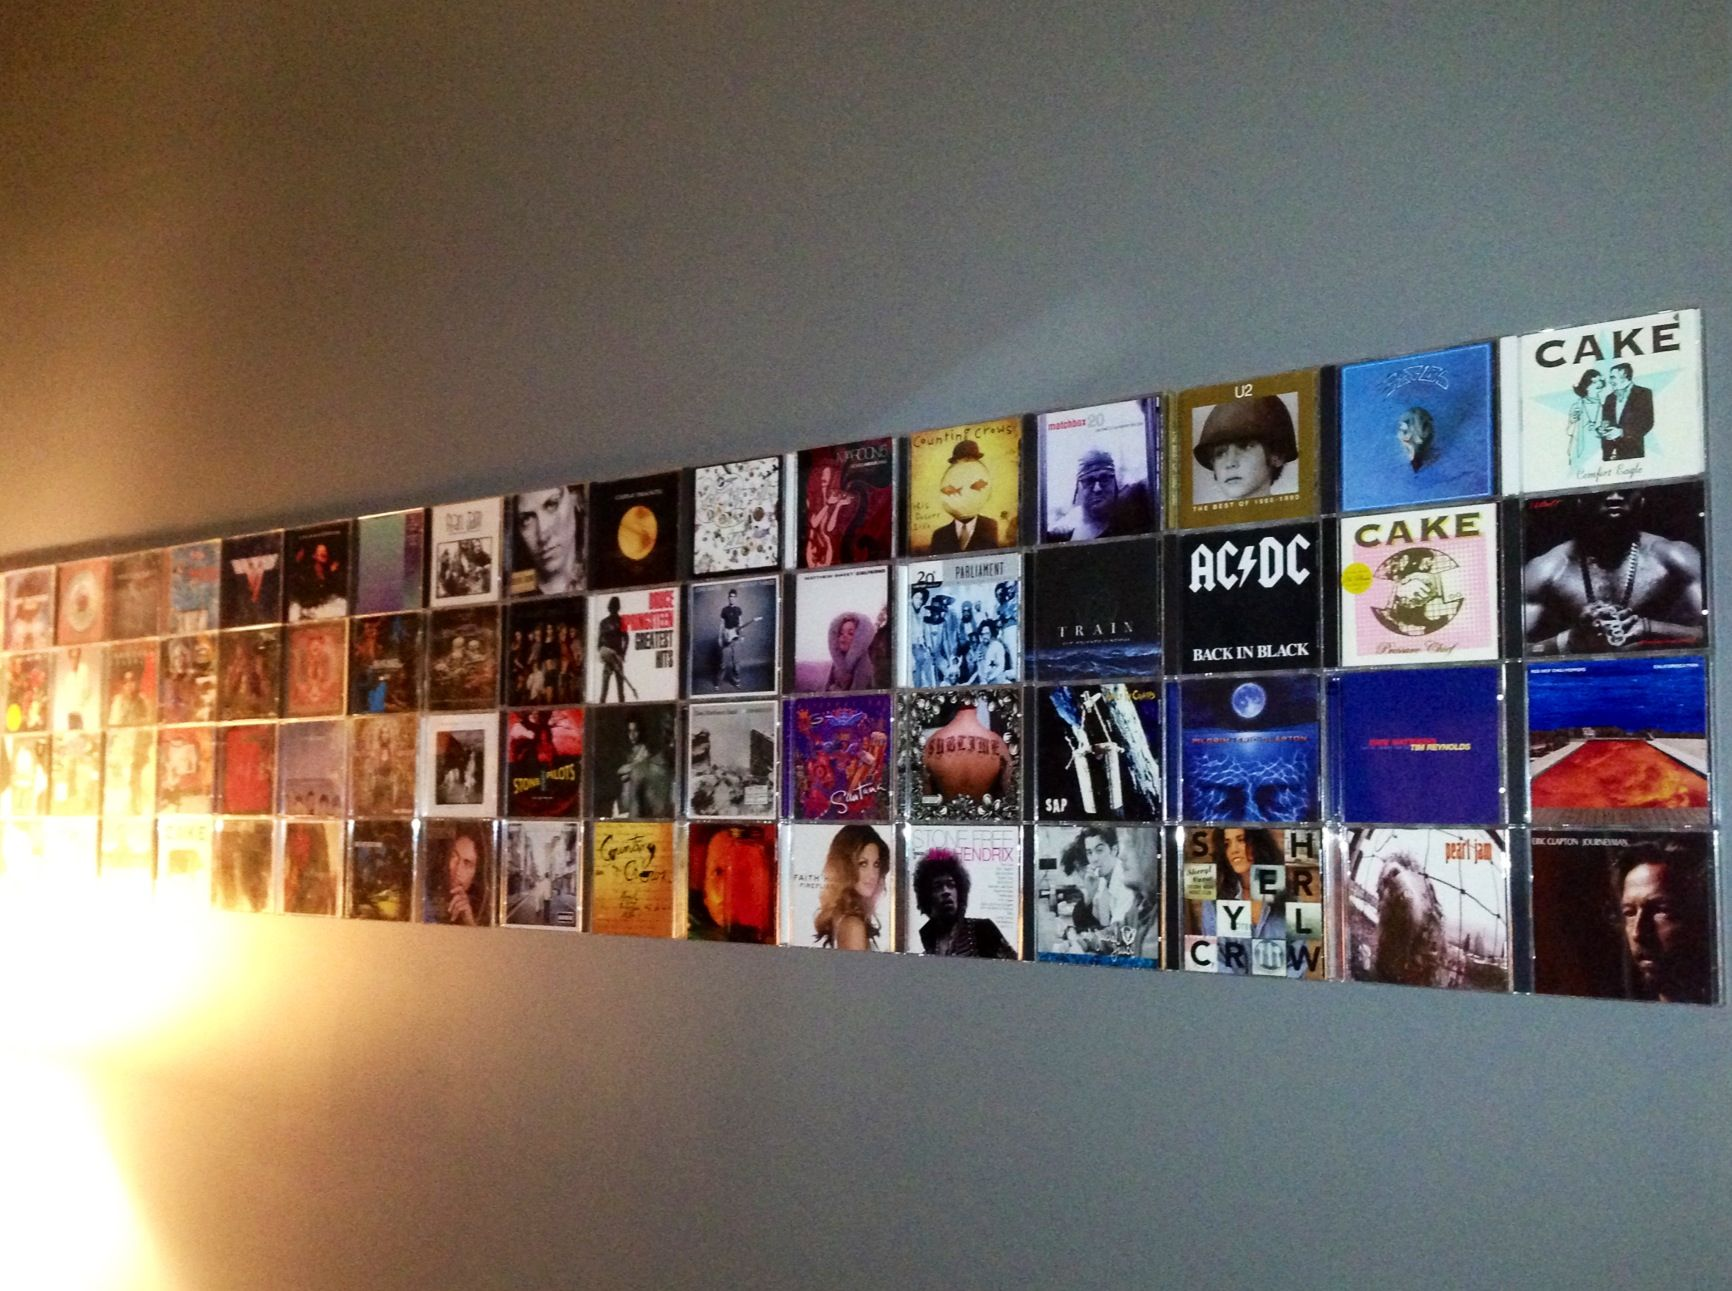 cd wall artattach the cases with 3m adhesive strips. you could